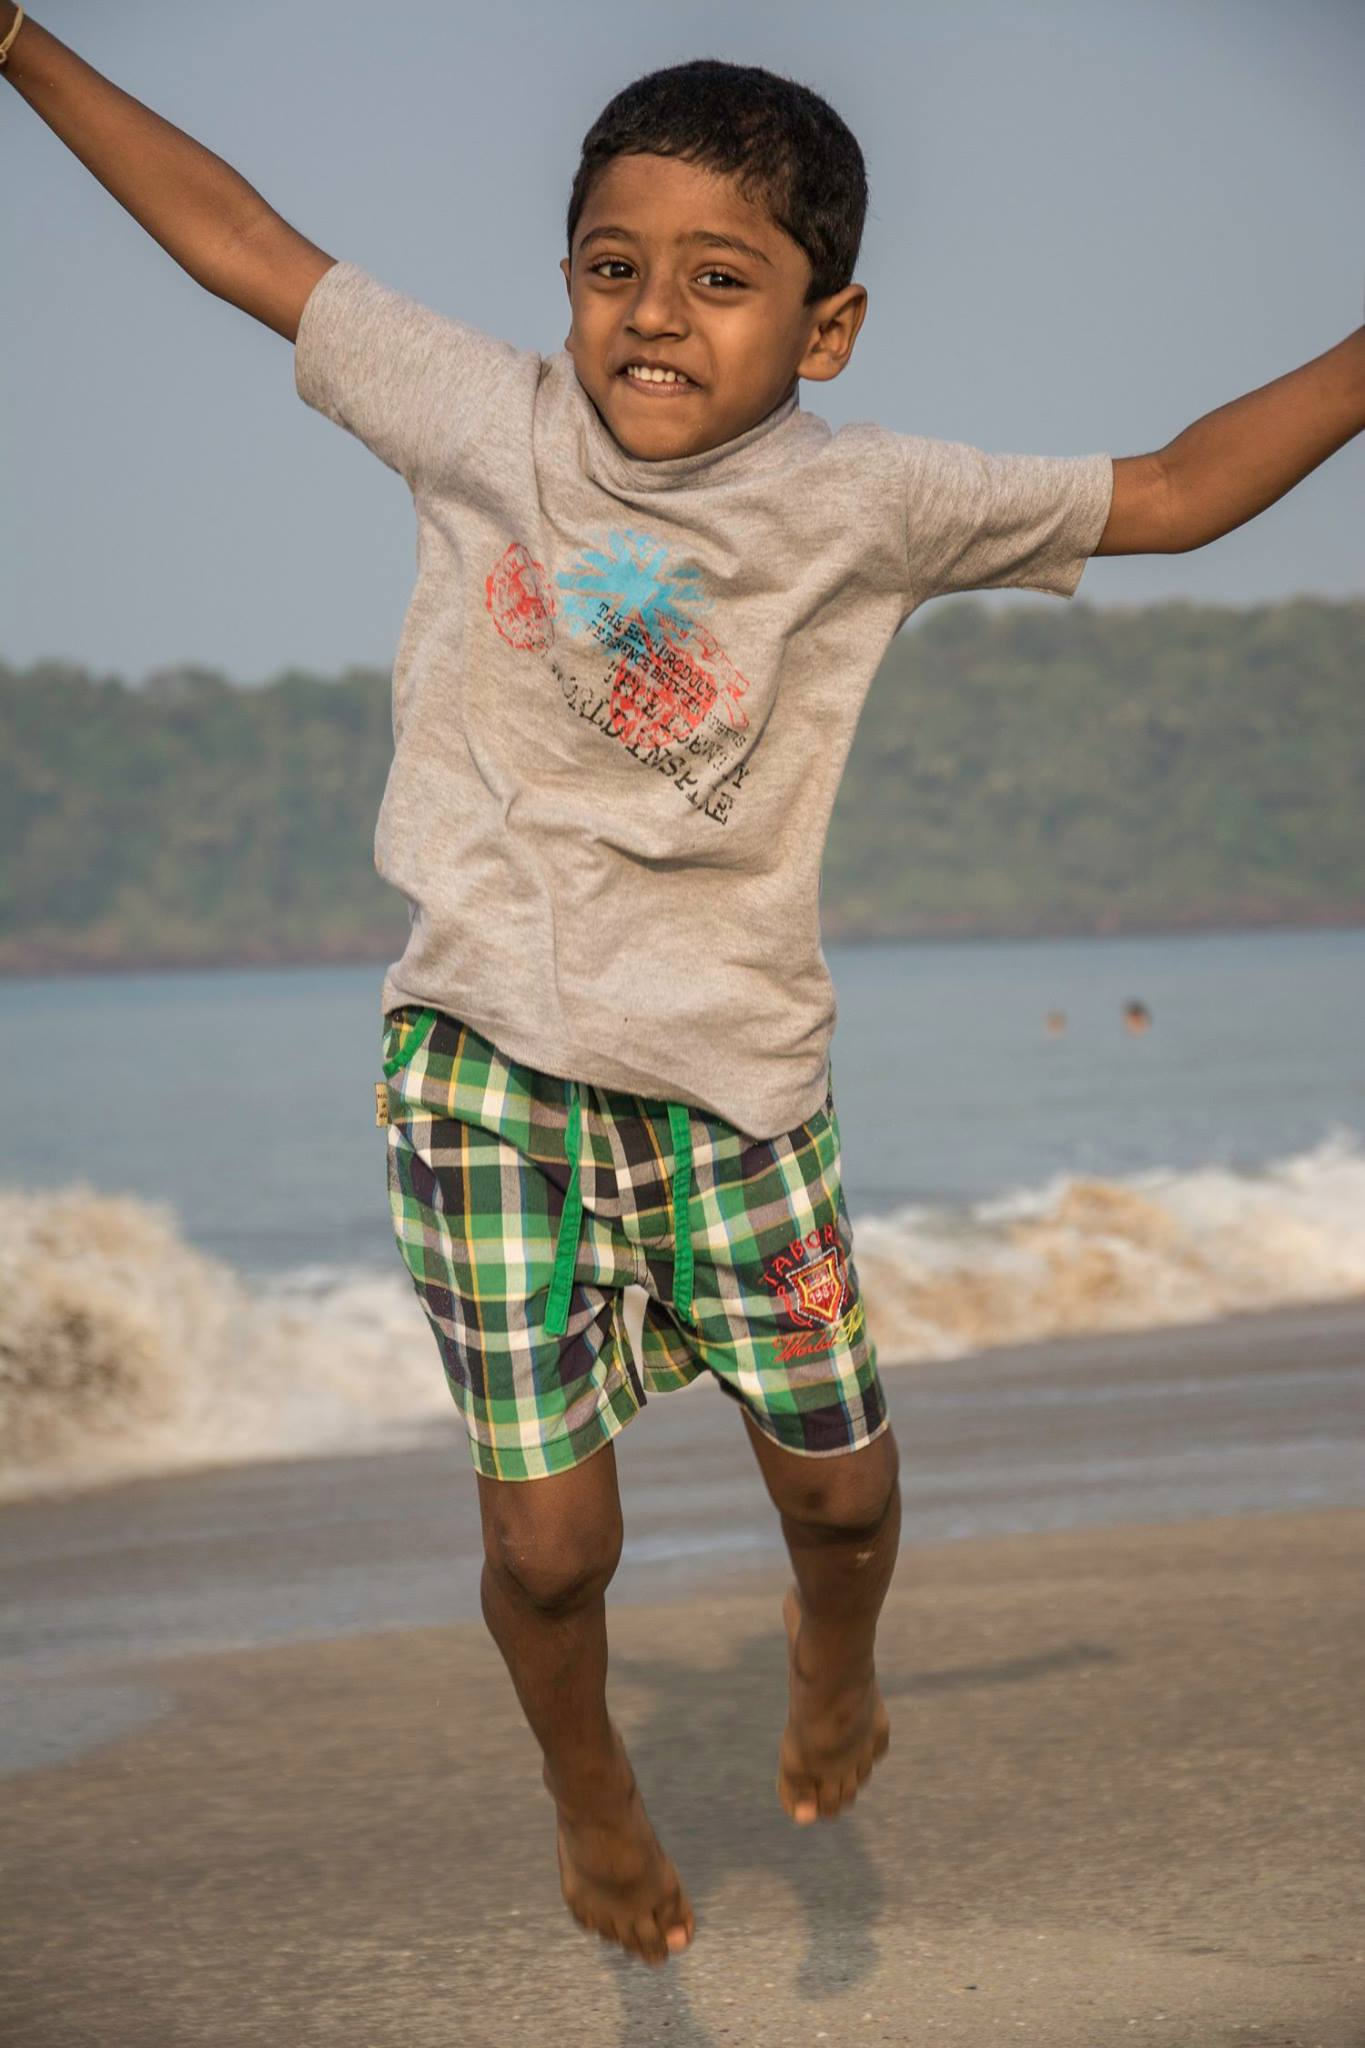 Nandu jumping around at Agonda